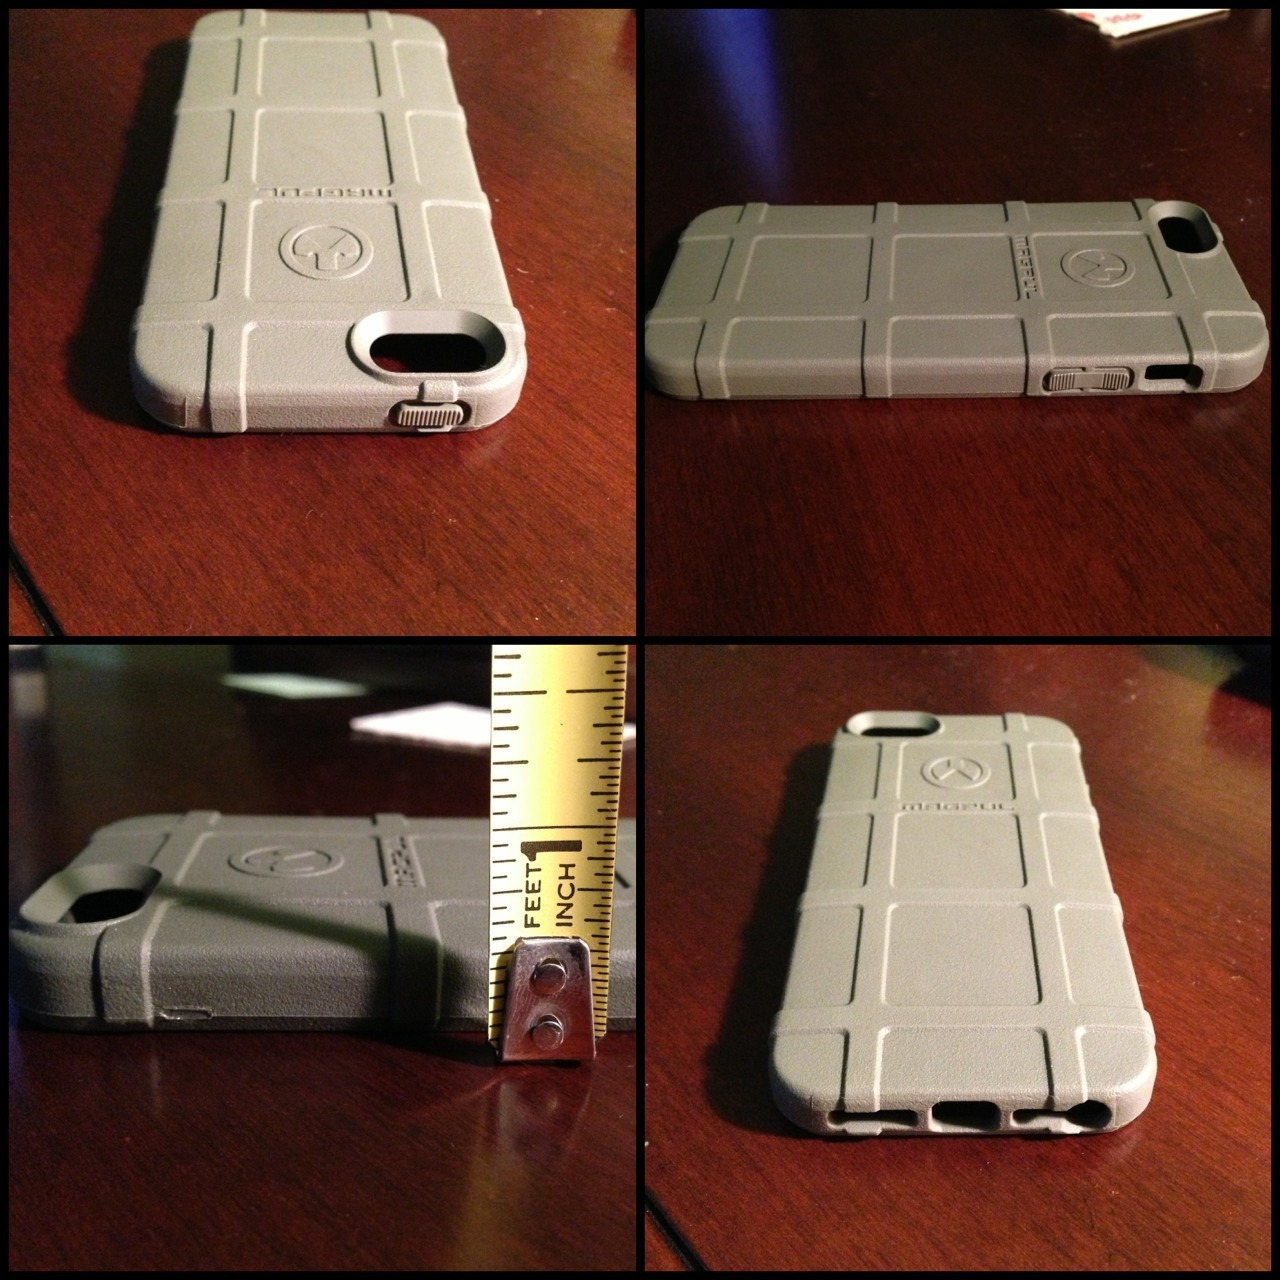 New Magpul iPhone 5 Field Case. Pretty cool.